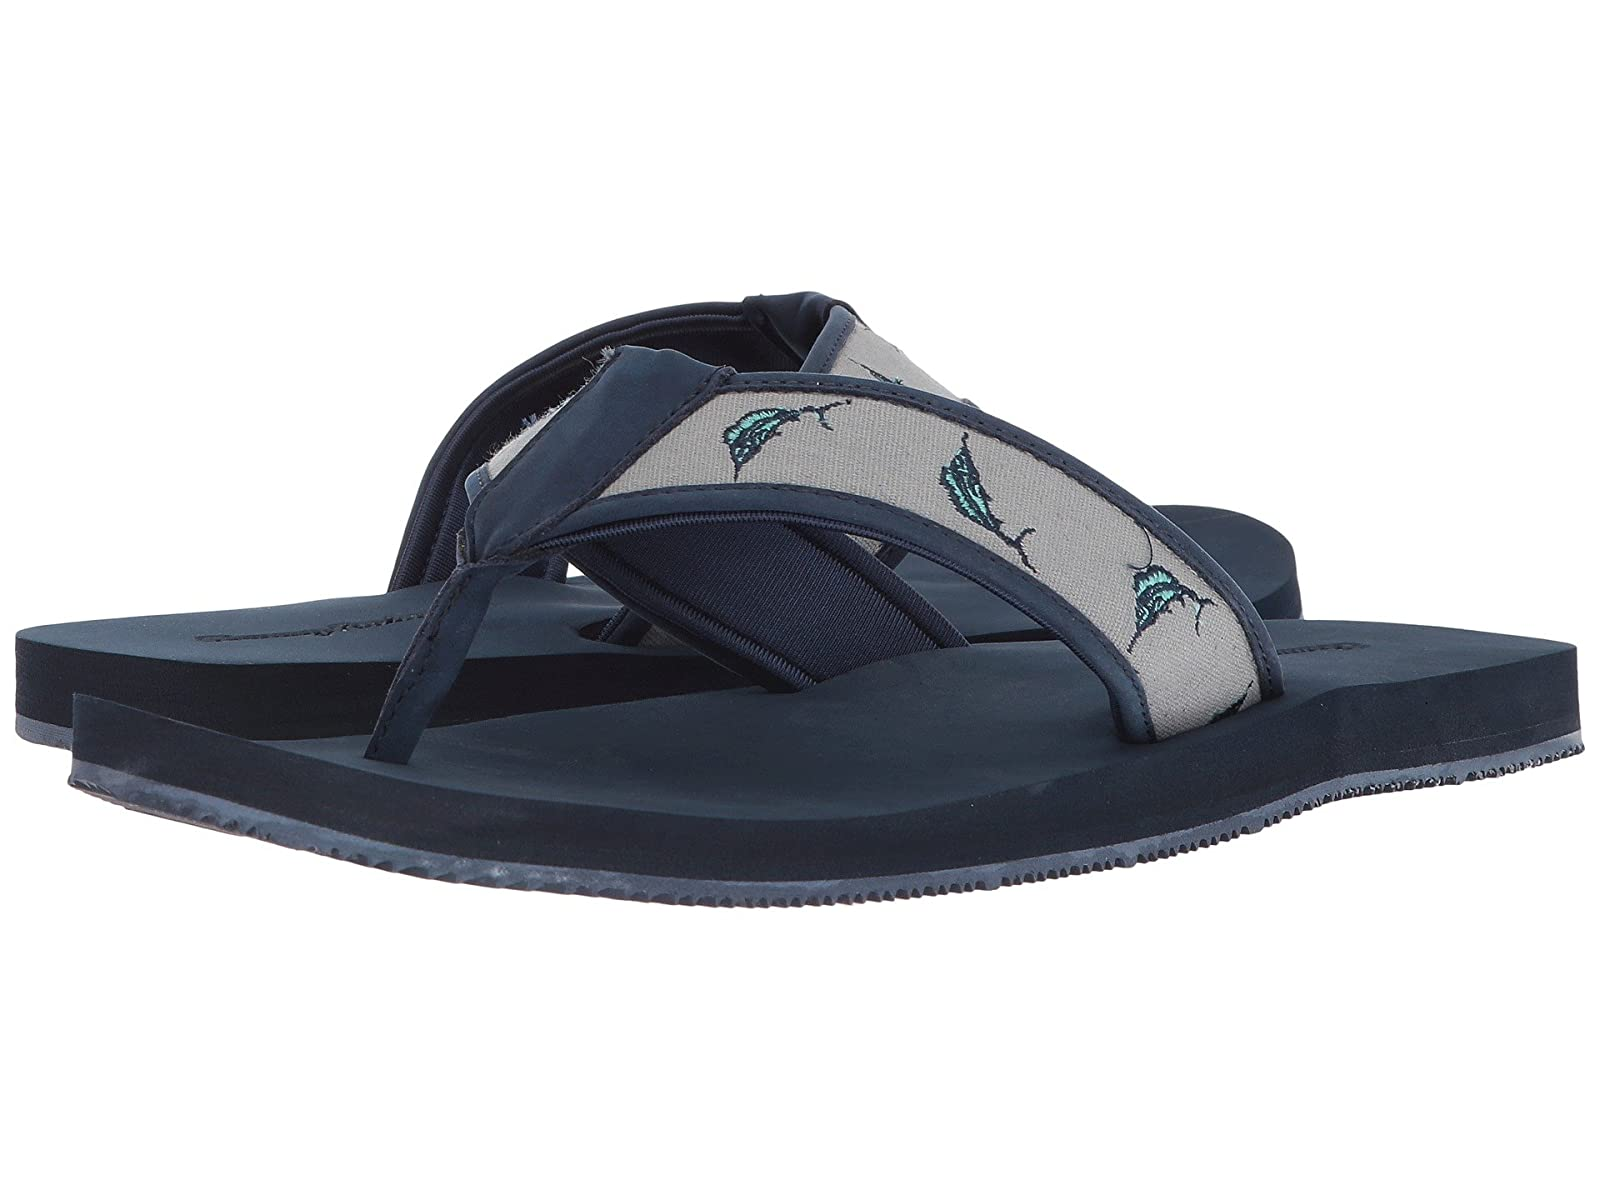 Tommy Bahama AllegroAtmospheric grades have affordable shoes